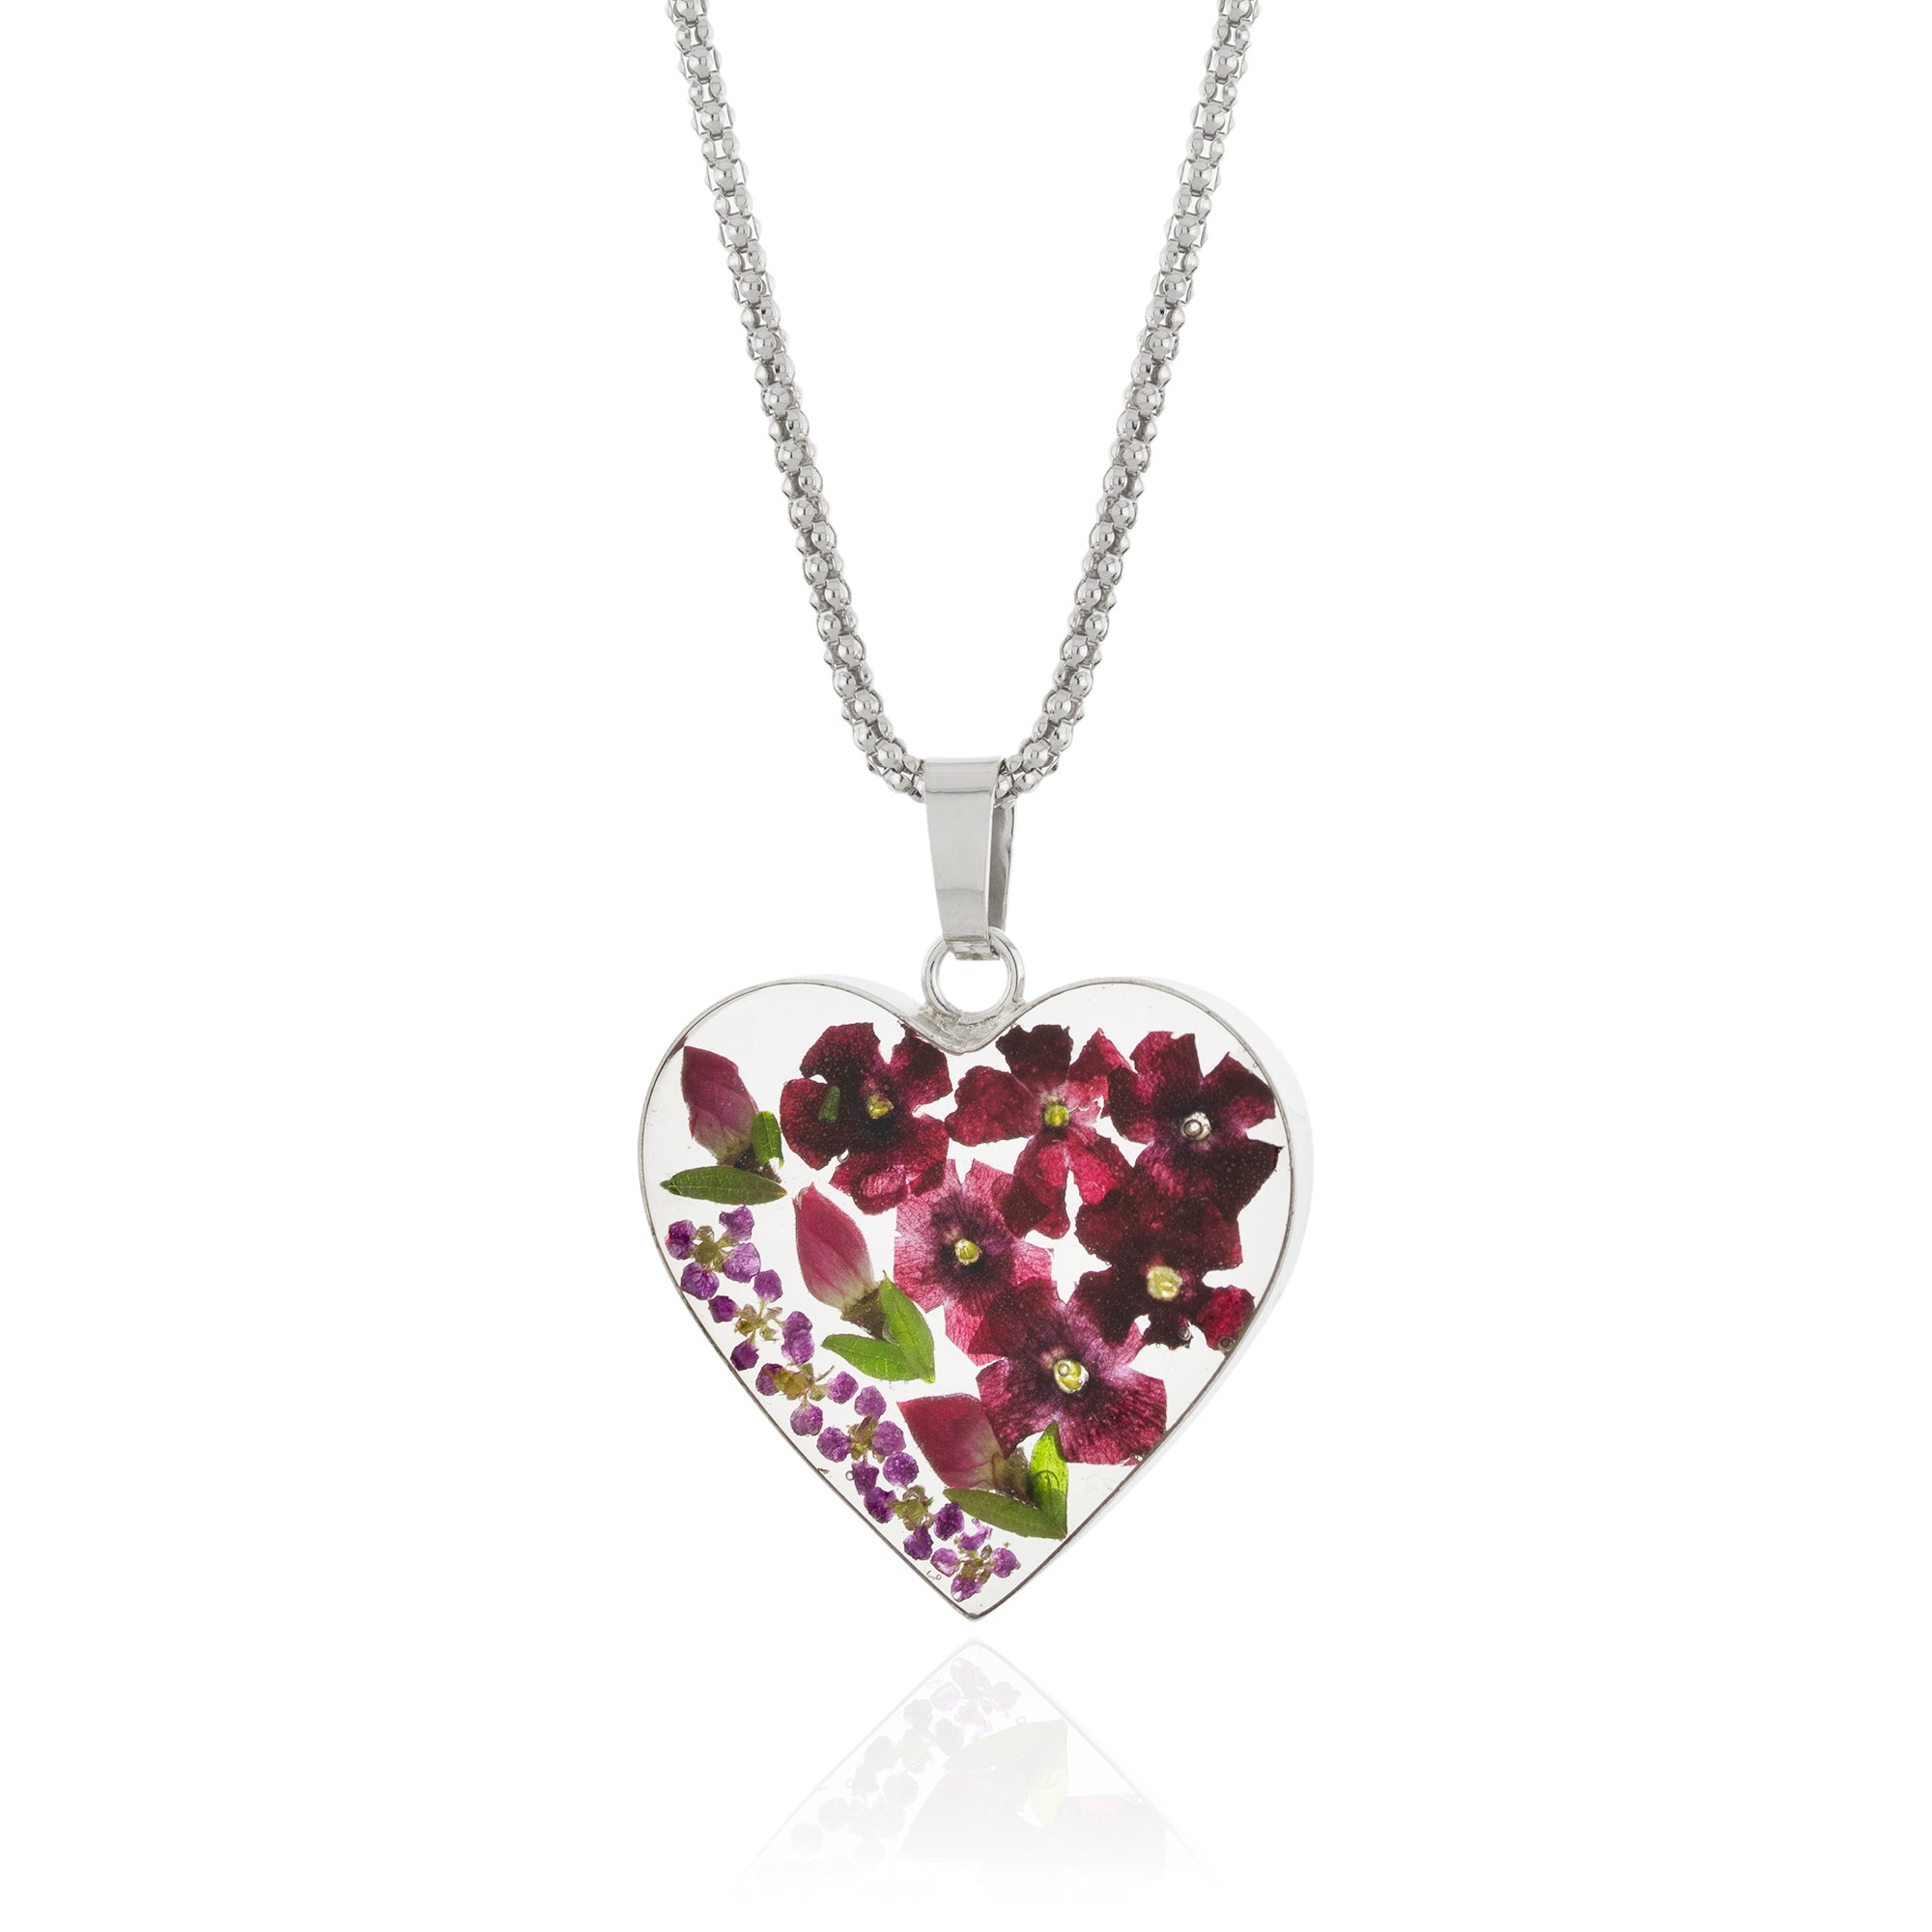 pink products emerson victoria silver stone pendant necklace